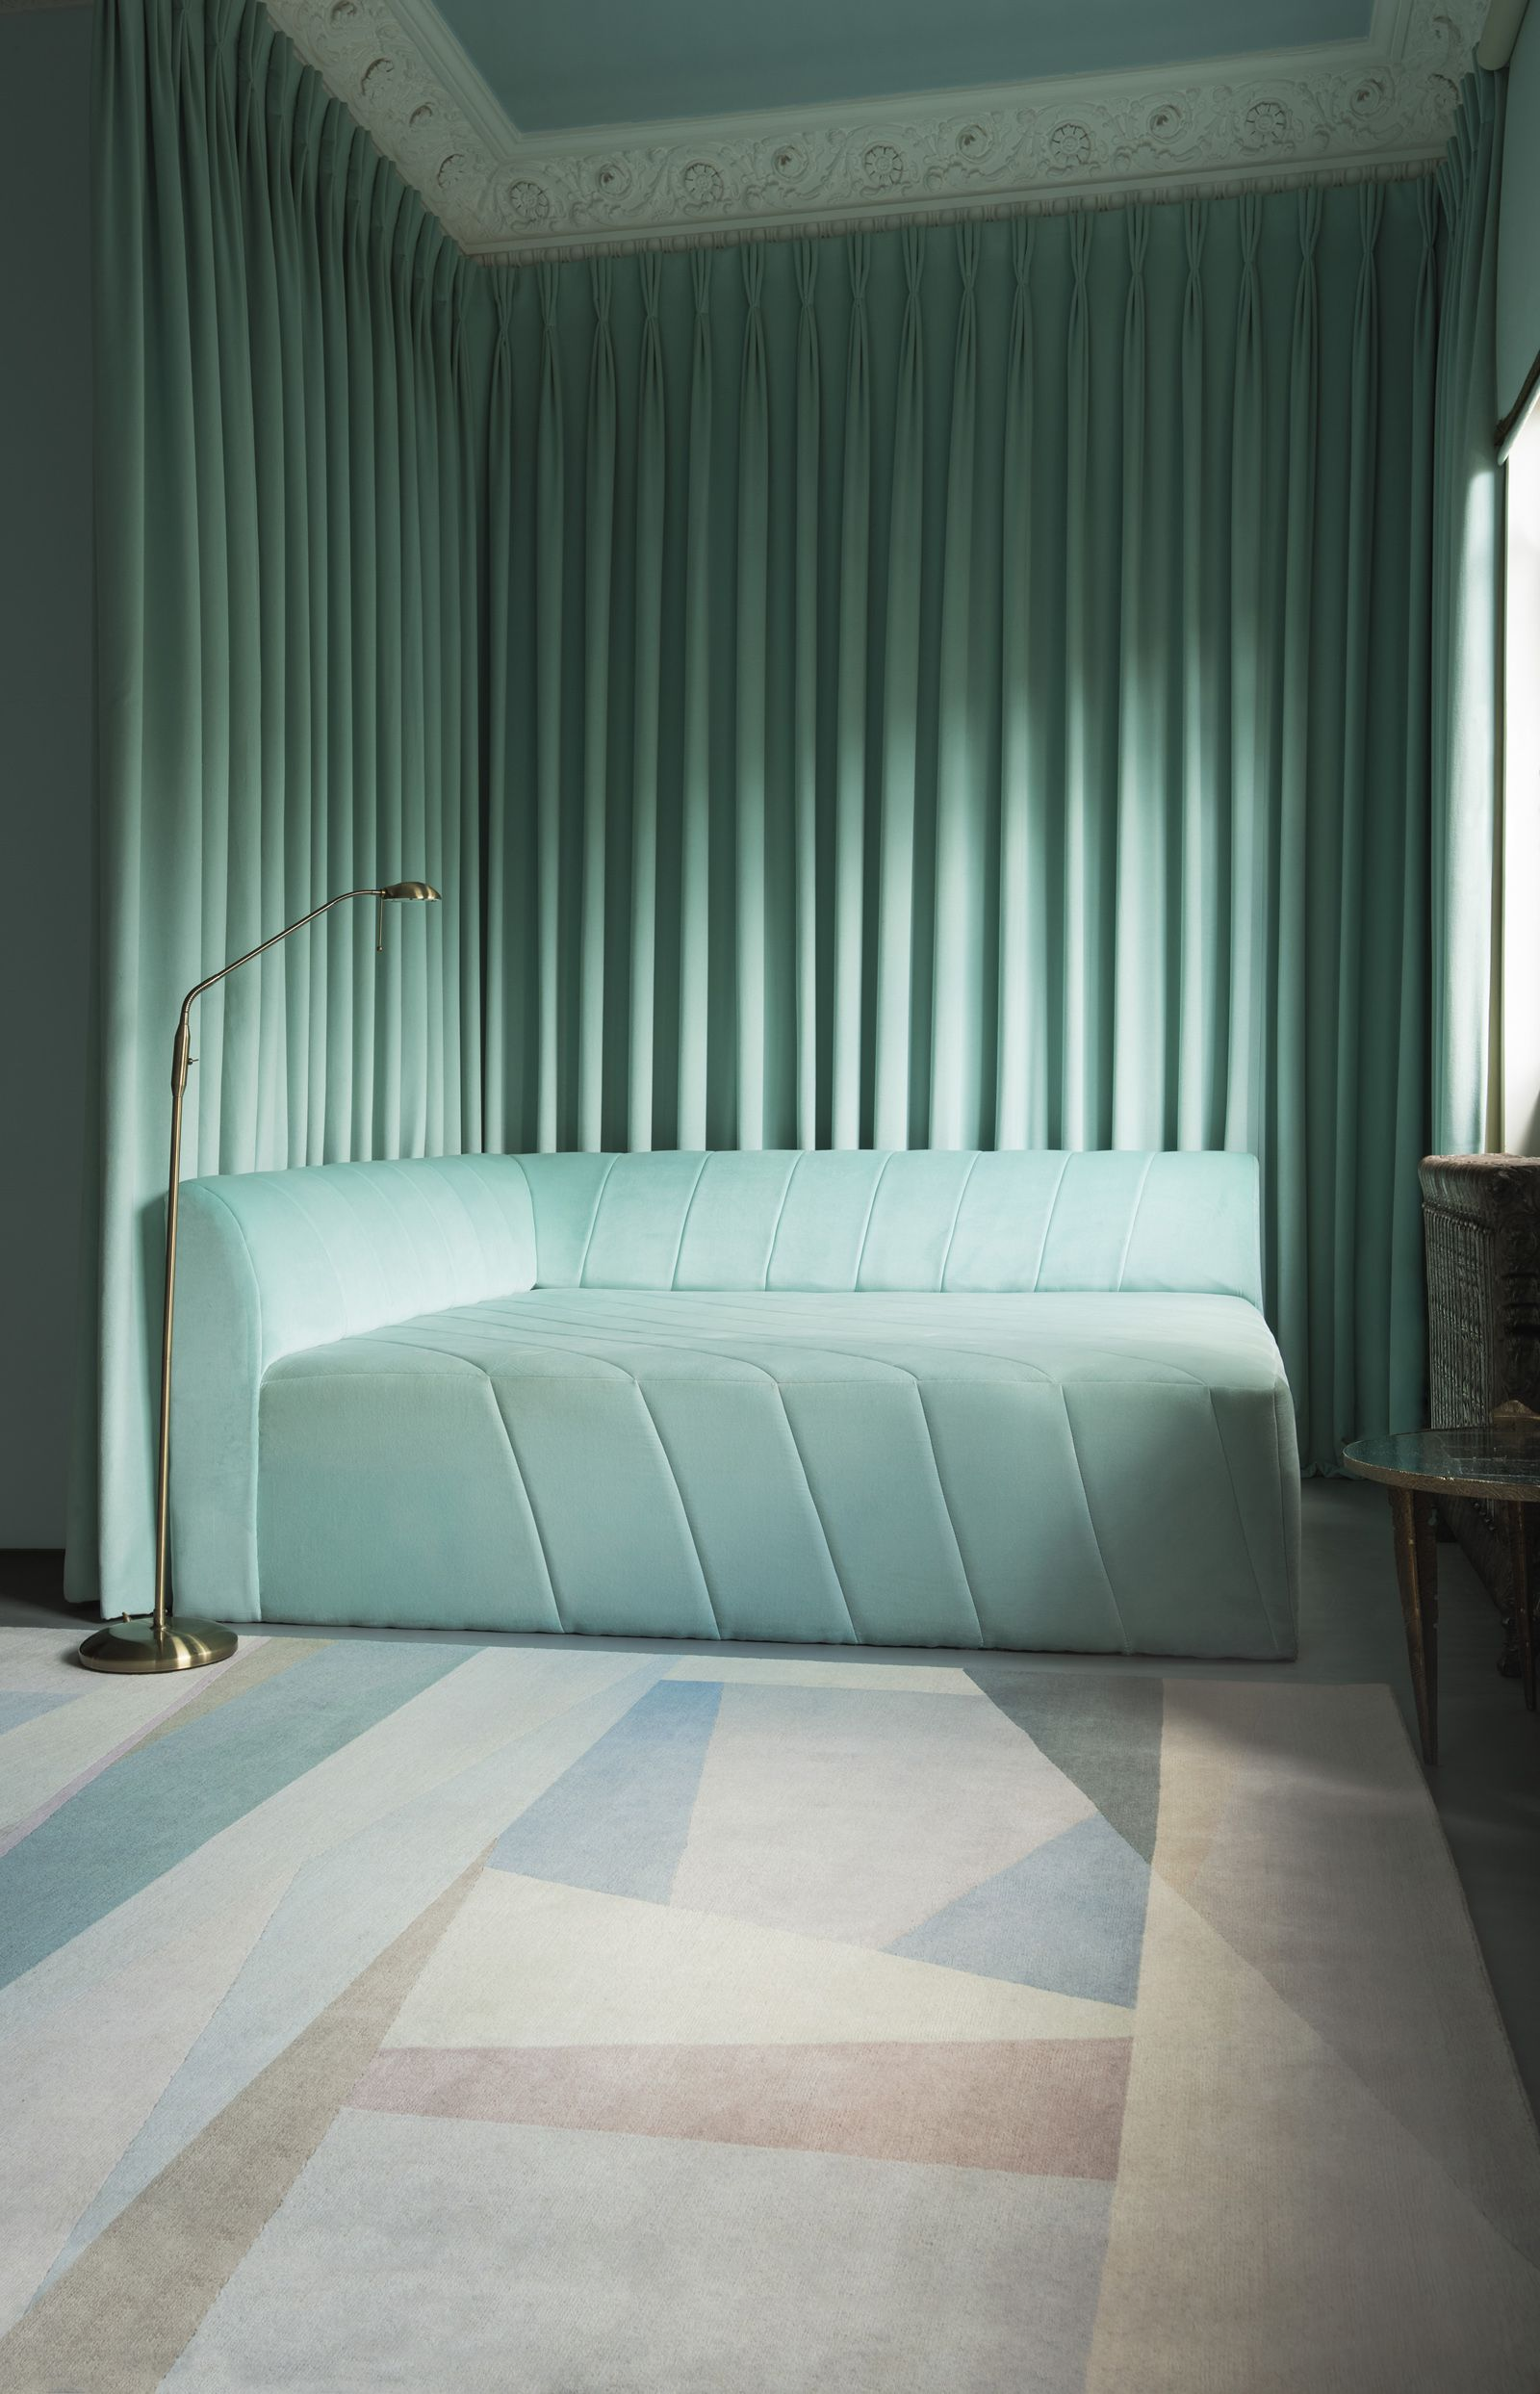 This rug by Paul Smith has a soft and sophisticated bination of